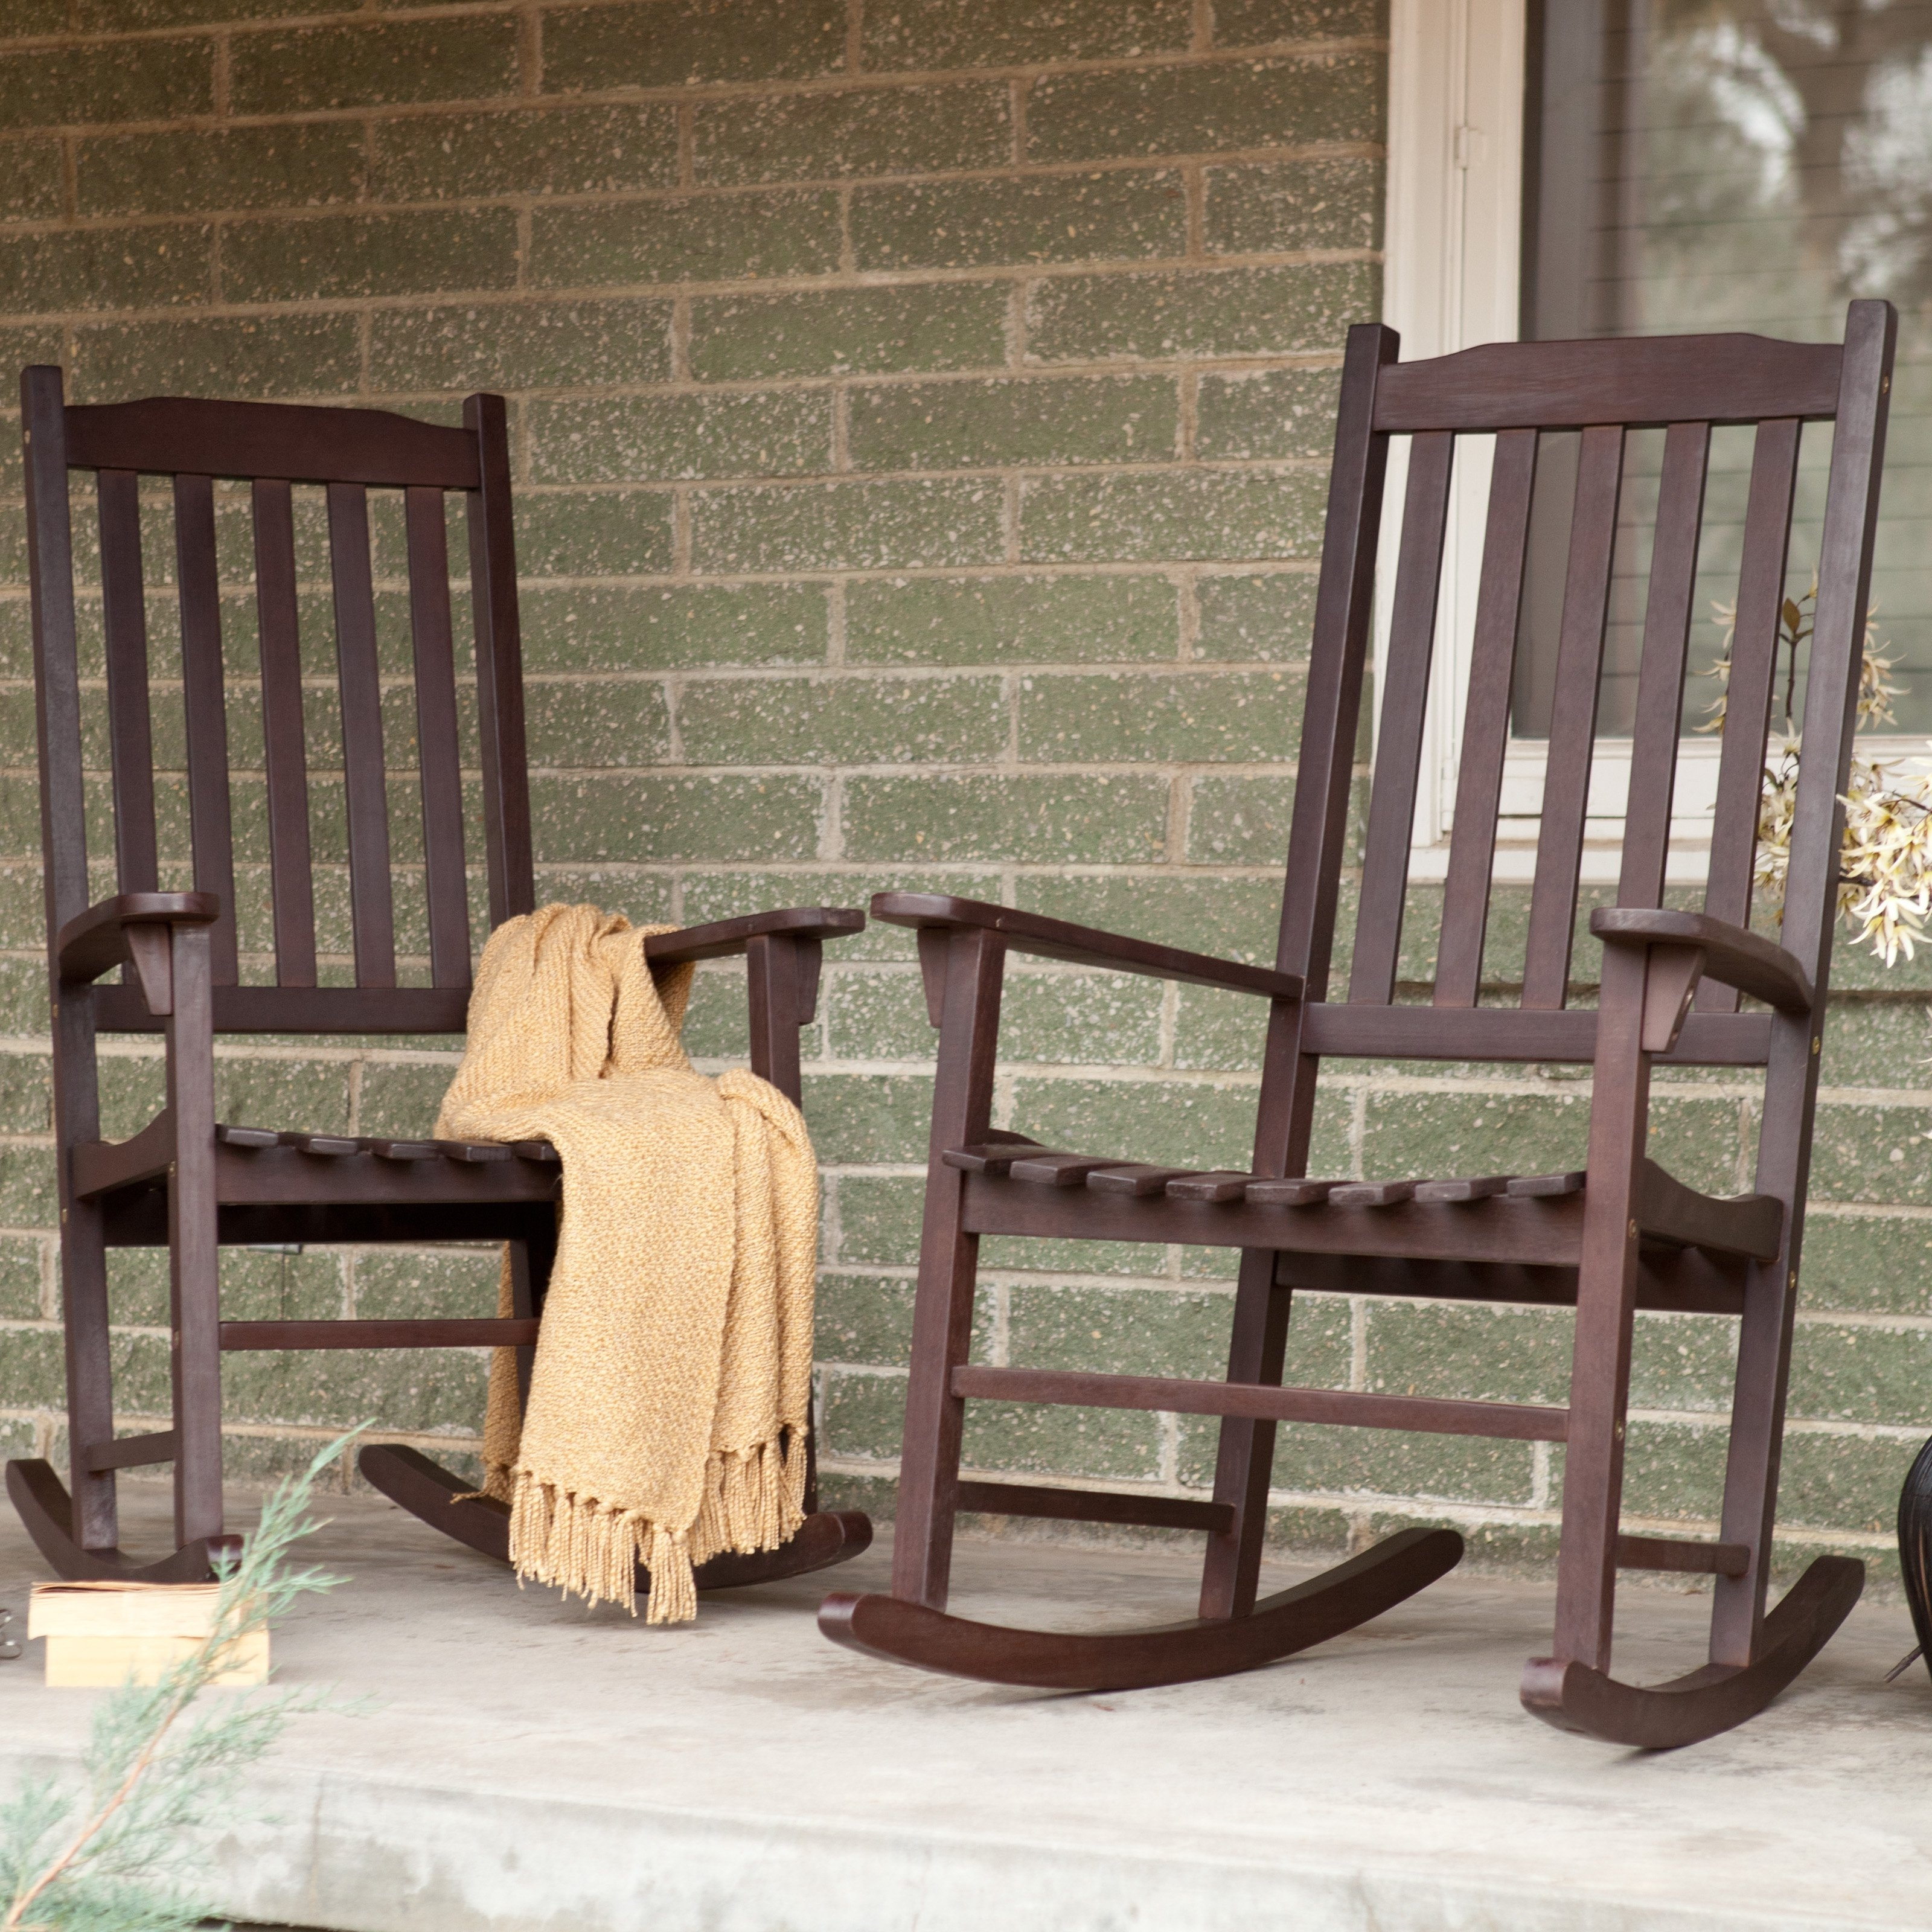 Chair Black Indoor Rocking Chair Black Patio Rocking Chairs Black Inside Black Patio Rocking Chairs (View 10 of 15)